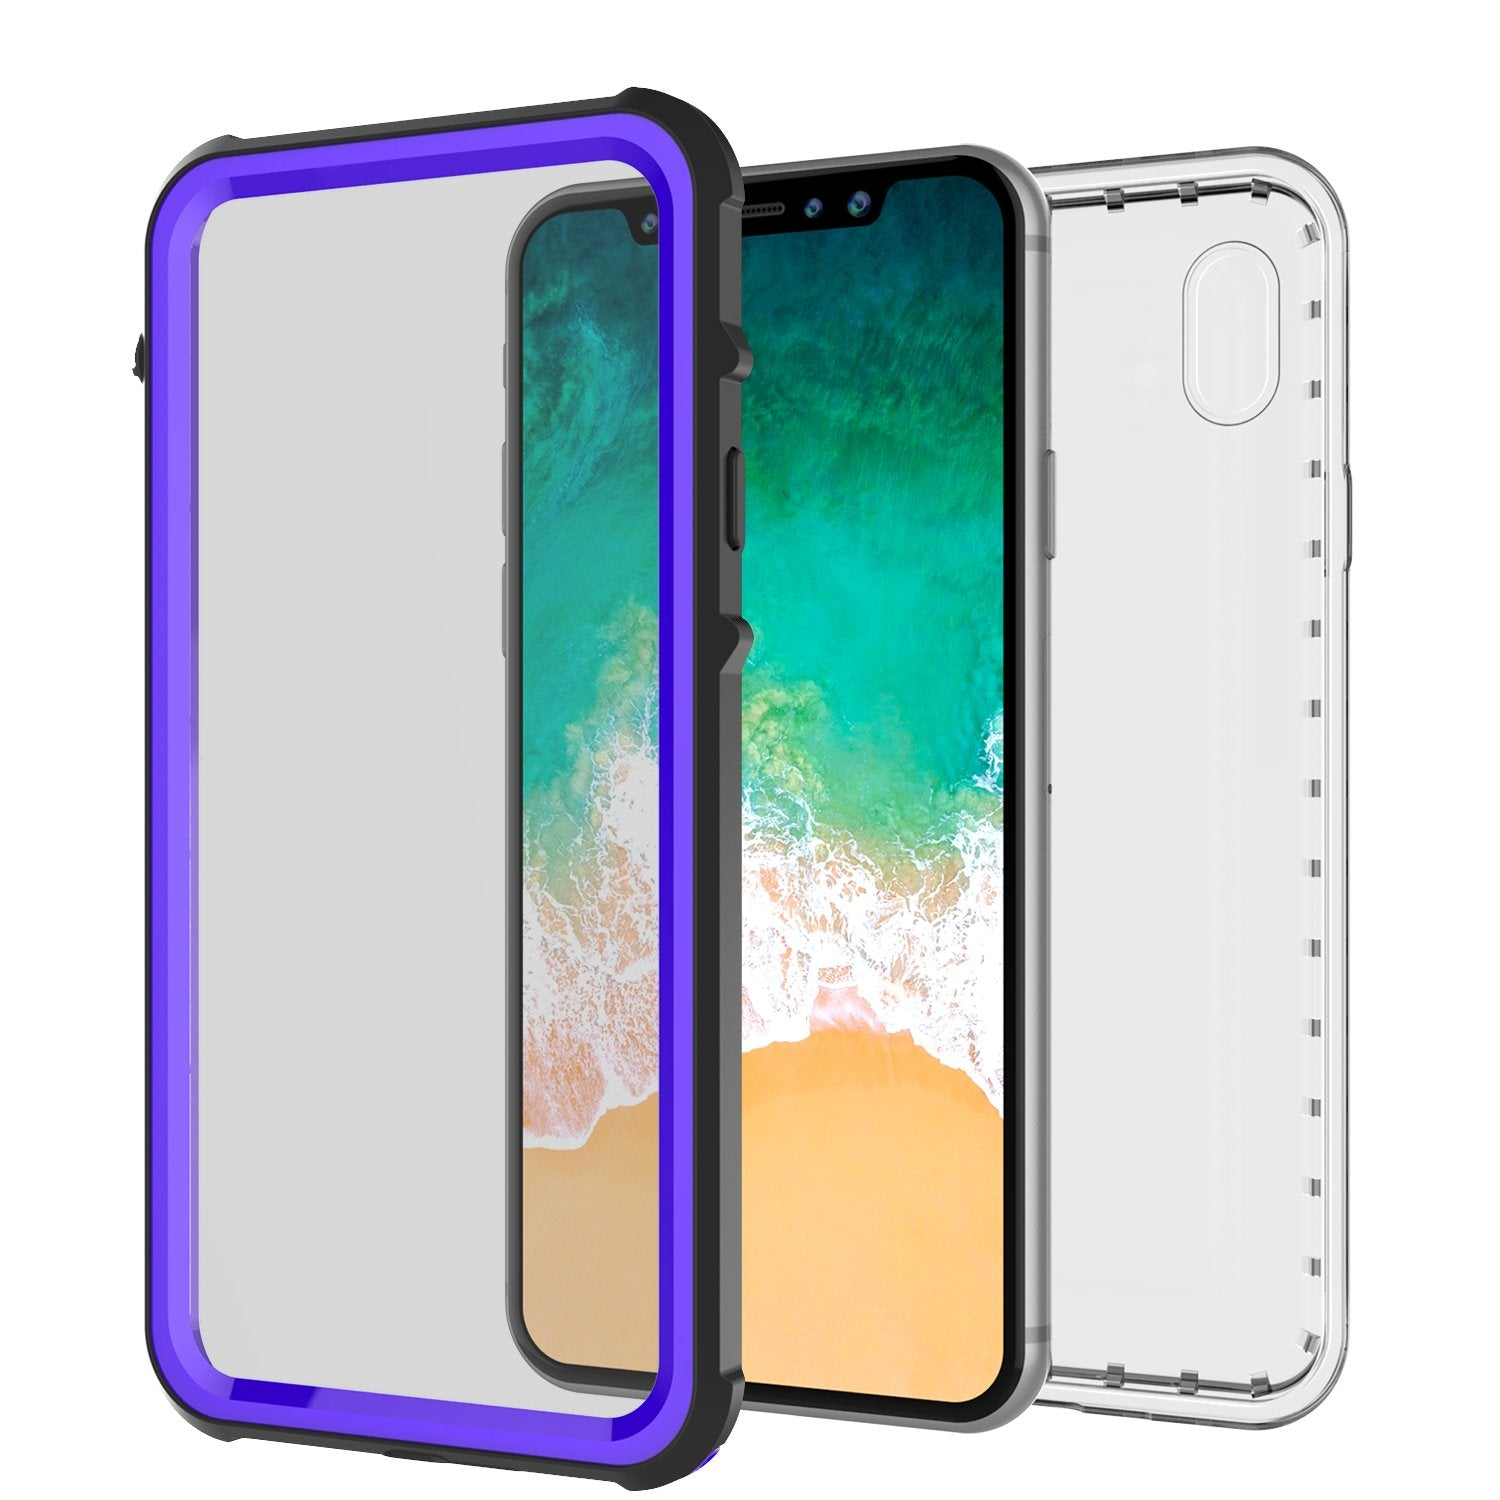 iPhone X Case, PUNKCase [CRYSTAL SERIES] Protective IP68 Certified Cover [Purple] - PunkCase NZ